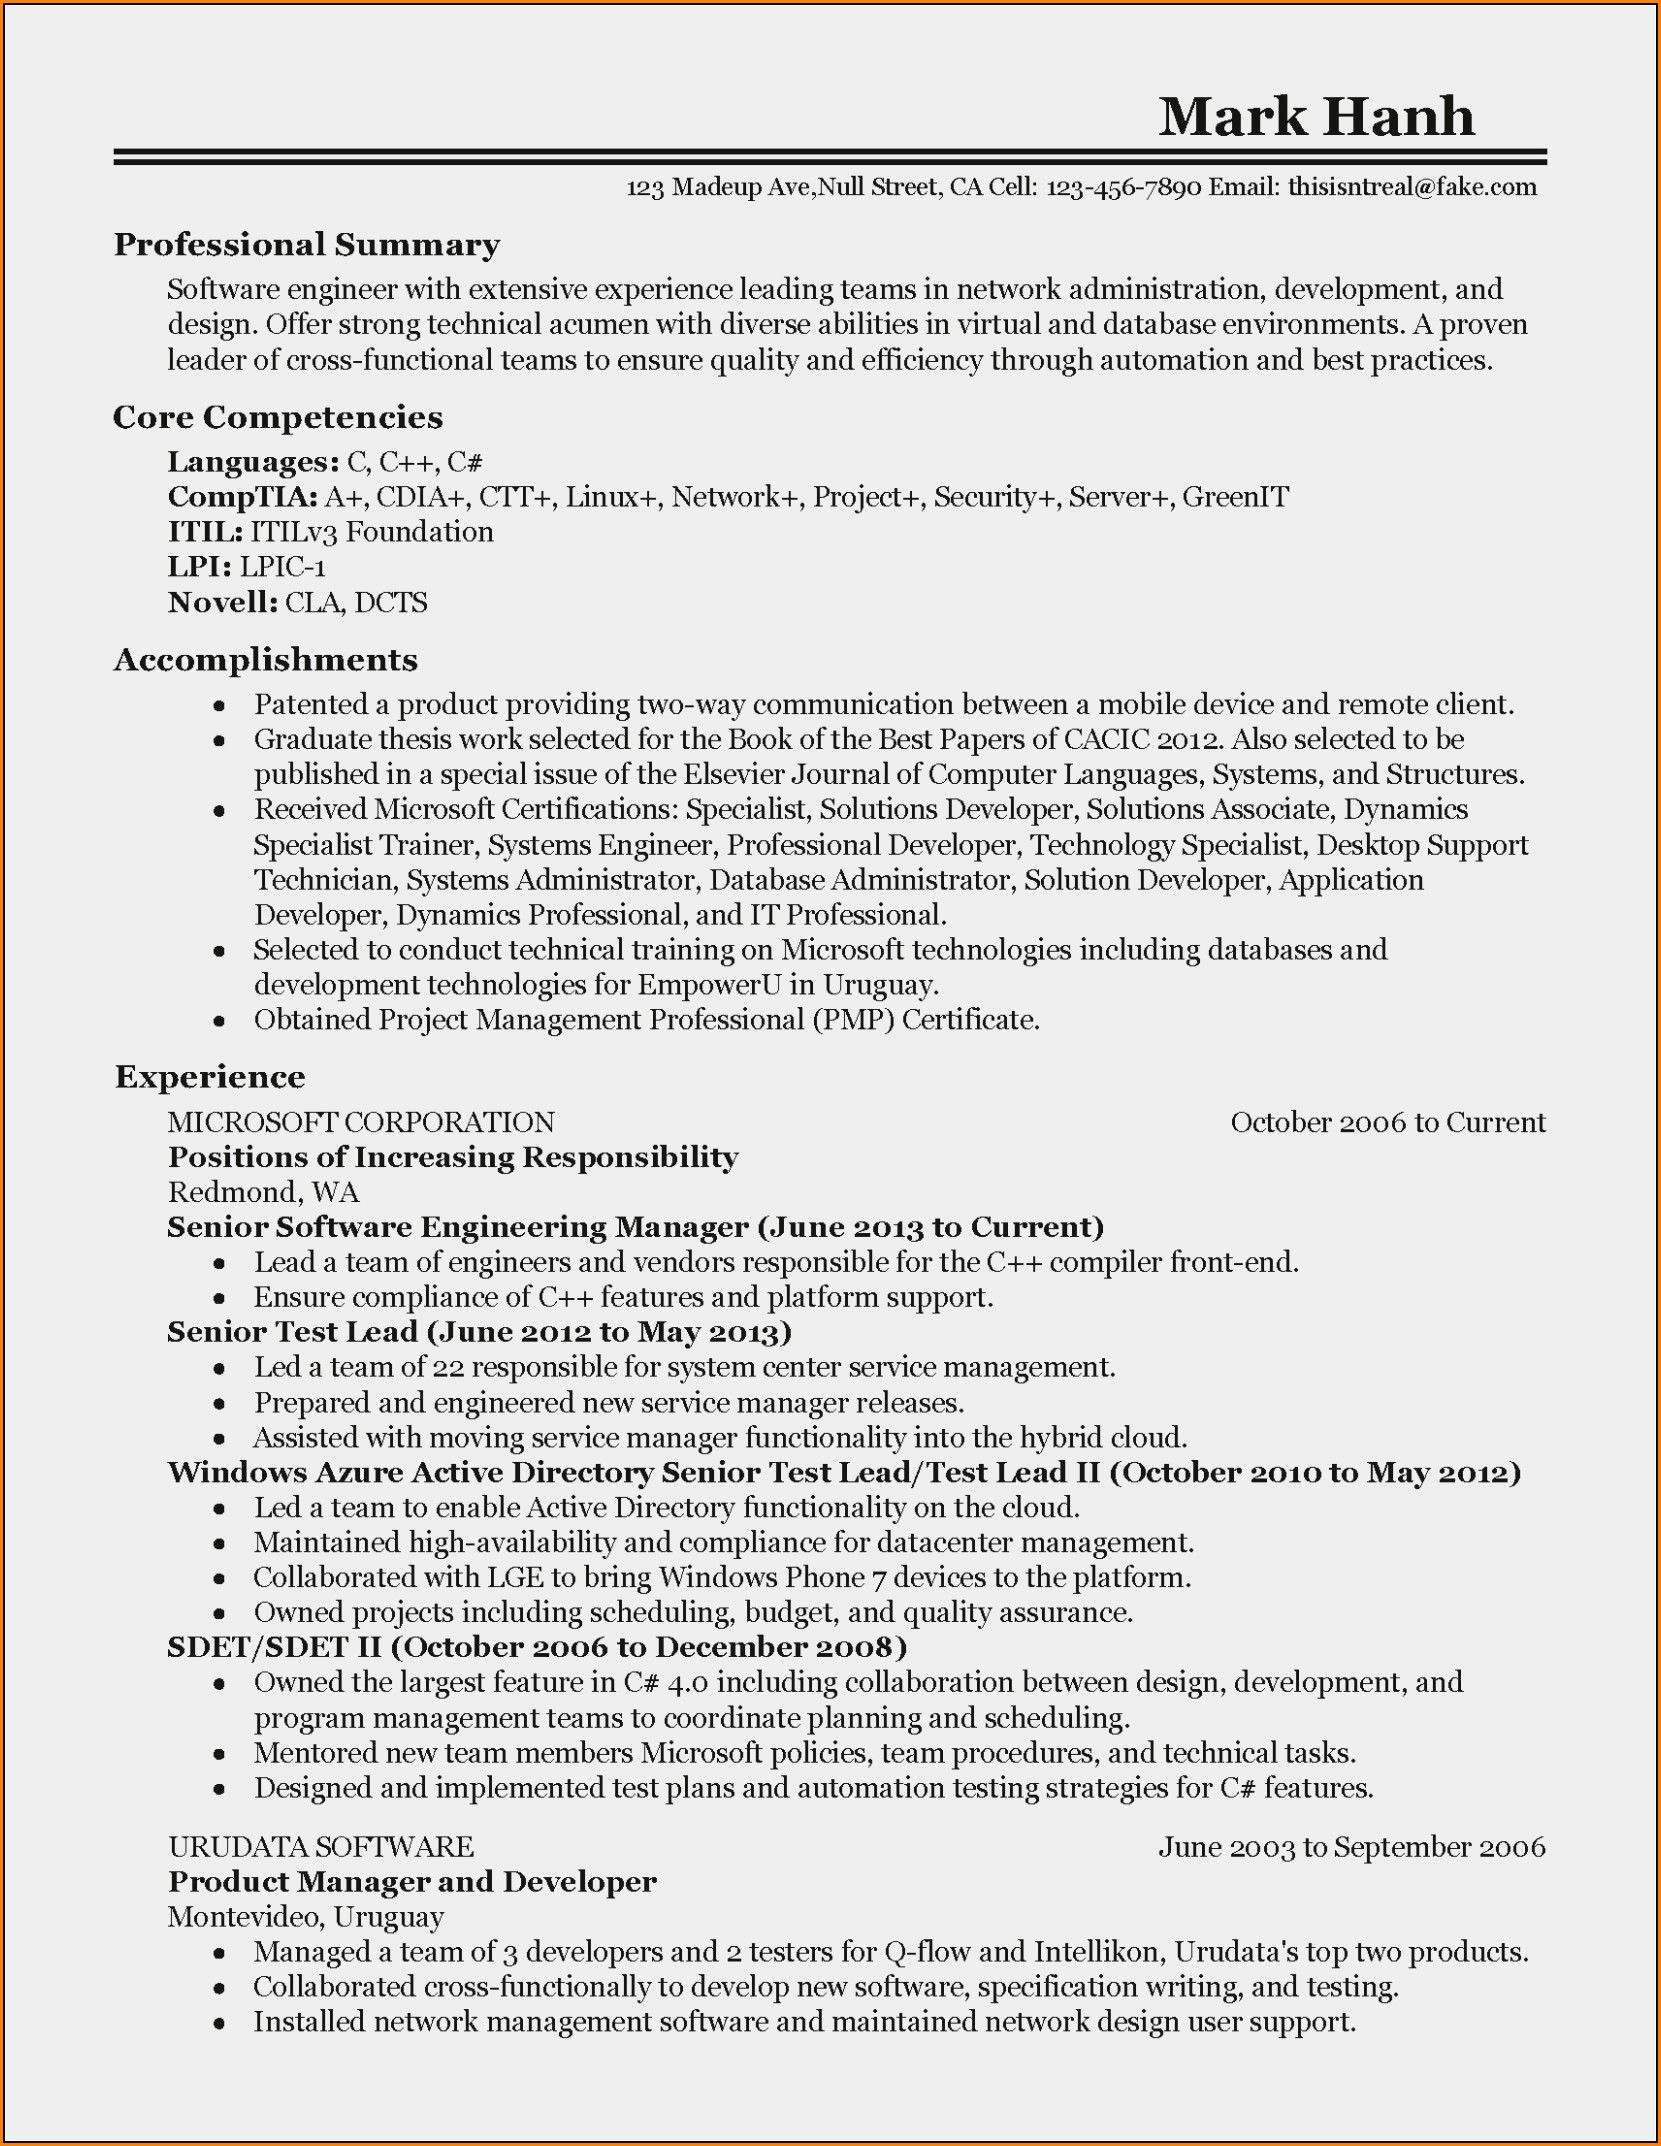 Professional Software Engineer Resume Samples